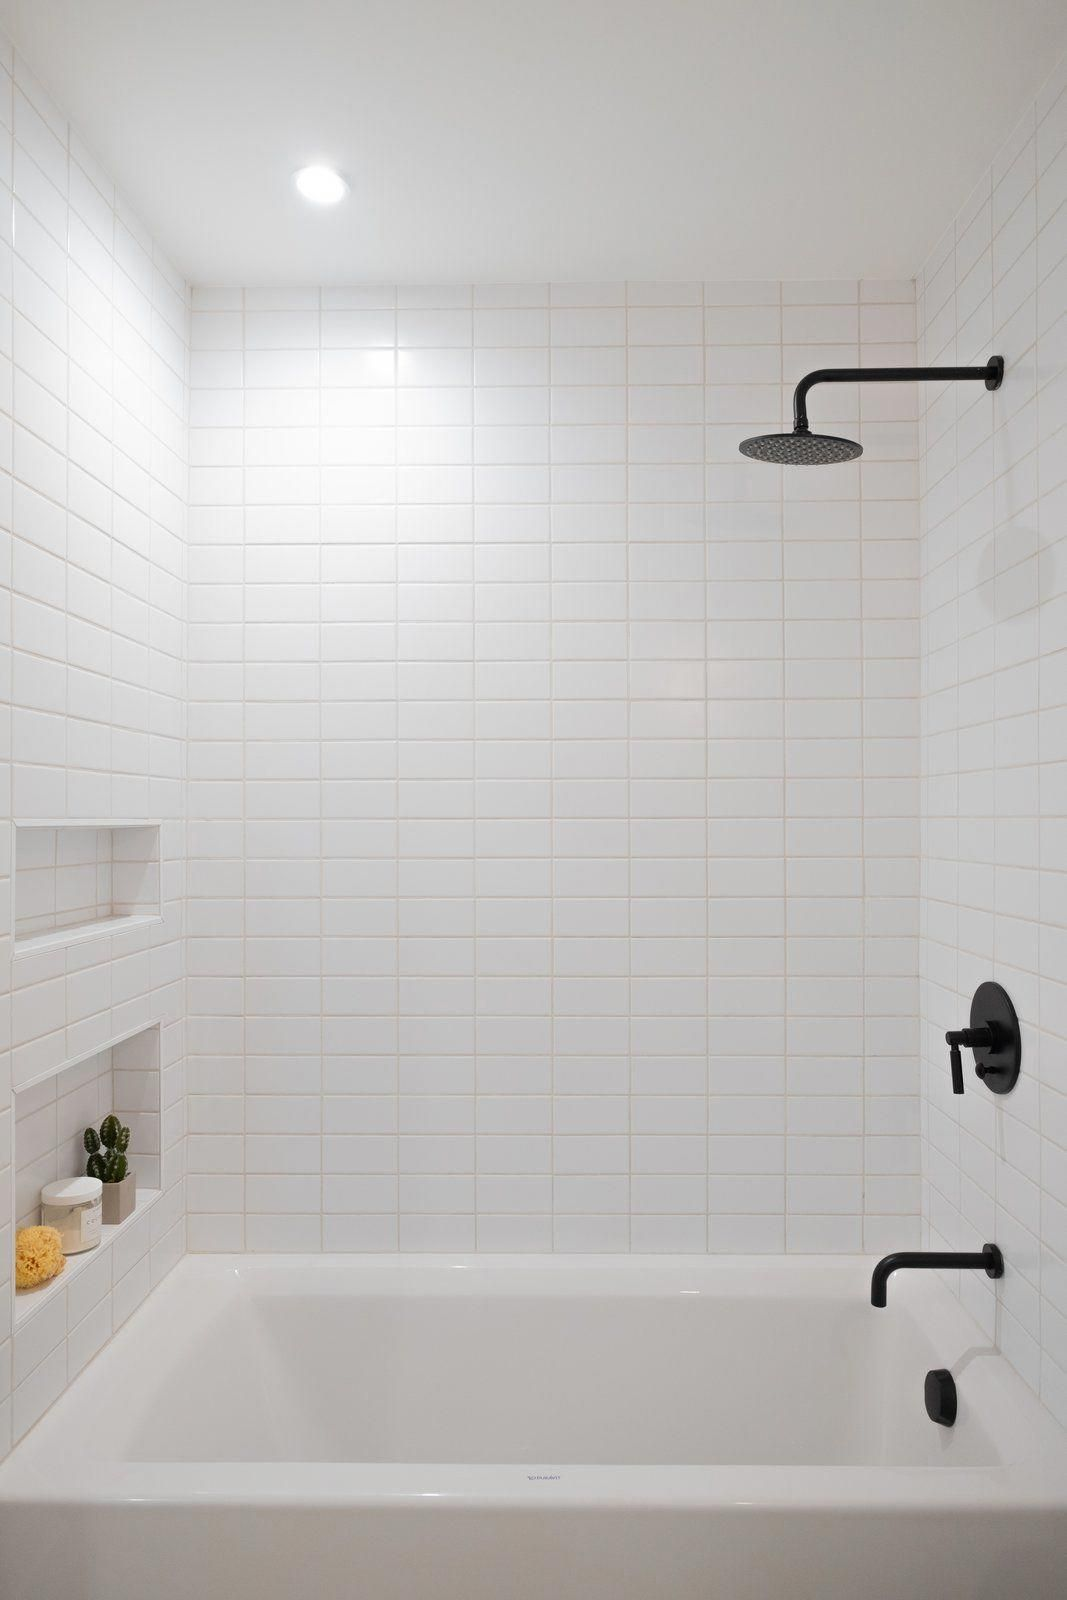 Bath Room Recessed Lighting Soaking Tub Full Shower Subway Tile Wall And Ceiling Lighting Each Bathr White Subway Tile Bathroom Shower Remodel Shower Tile